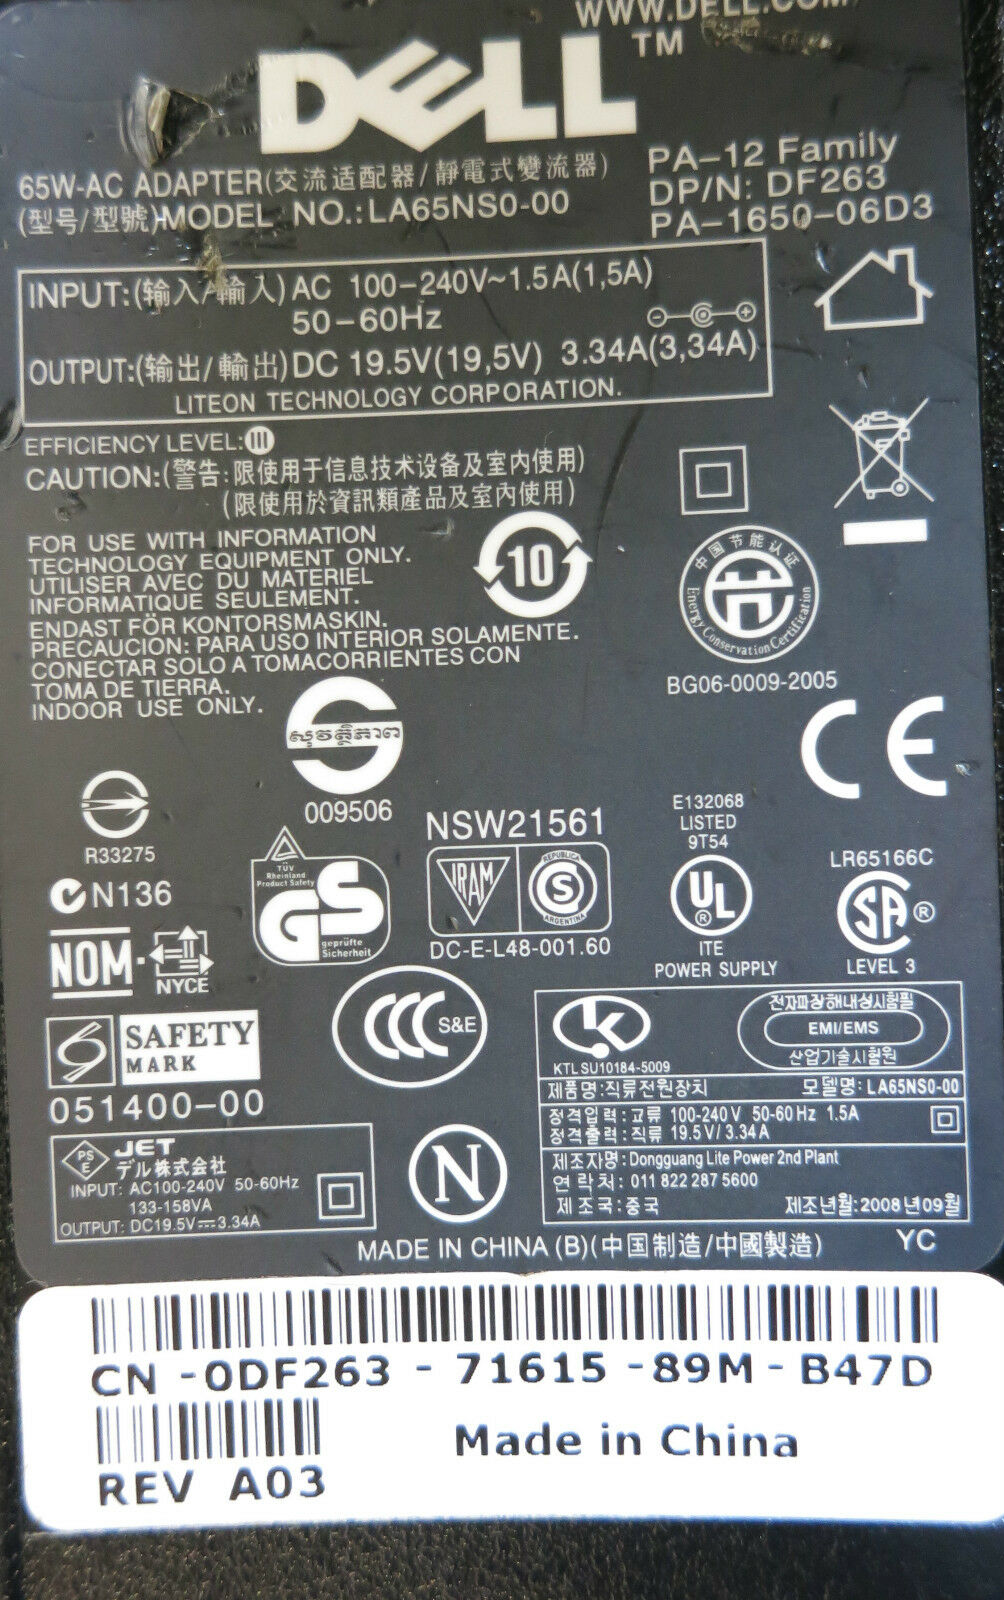 Dell 0DF263 LA65NS0-00 PA-12 Family Laptop AC Power Adapter 65W 19.5V 3.34A